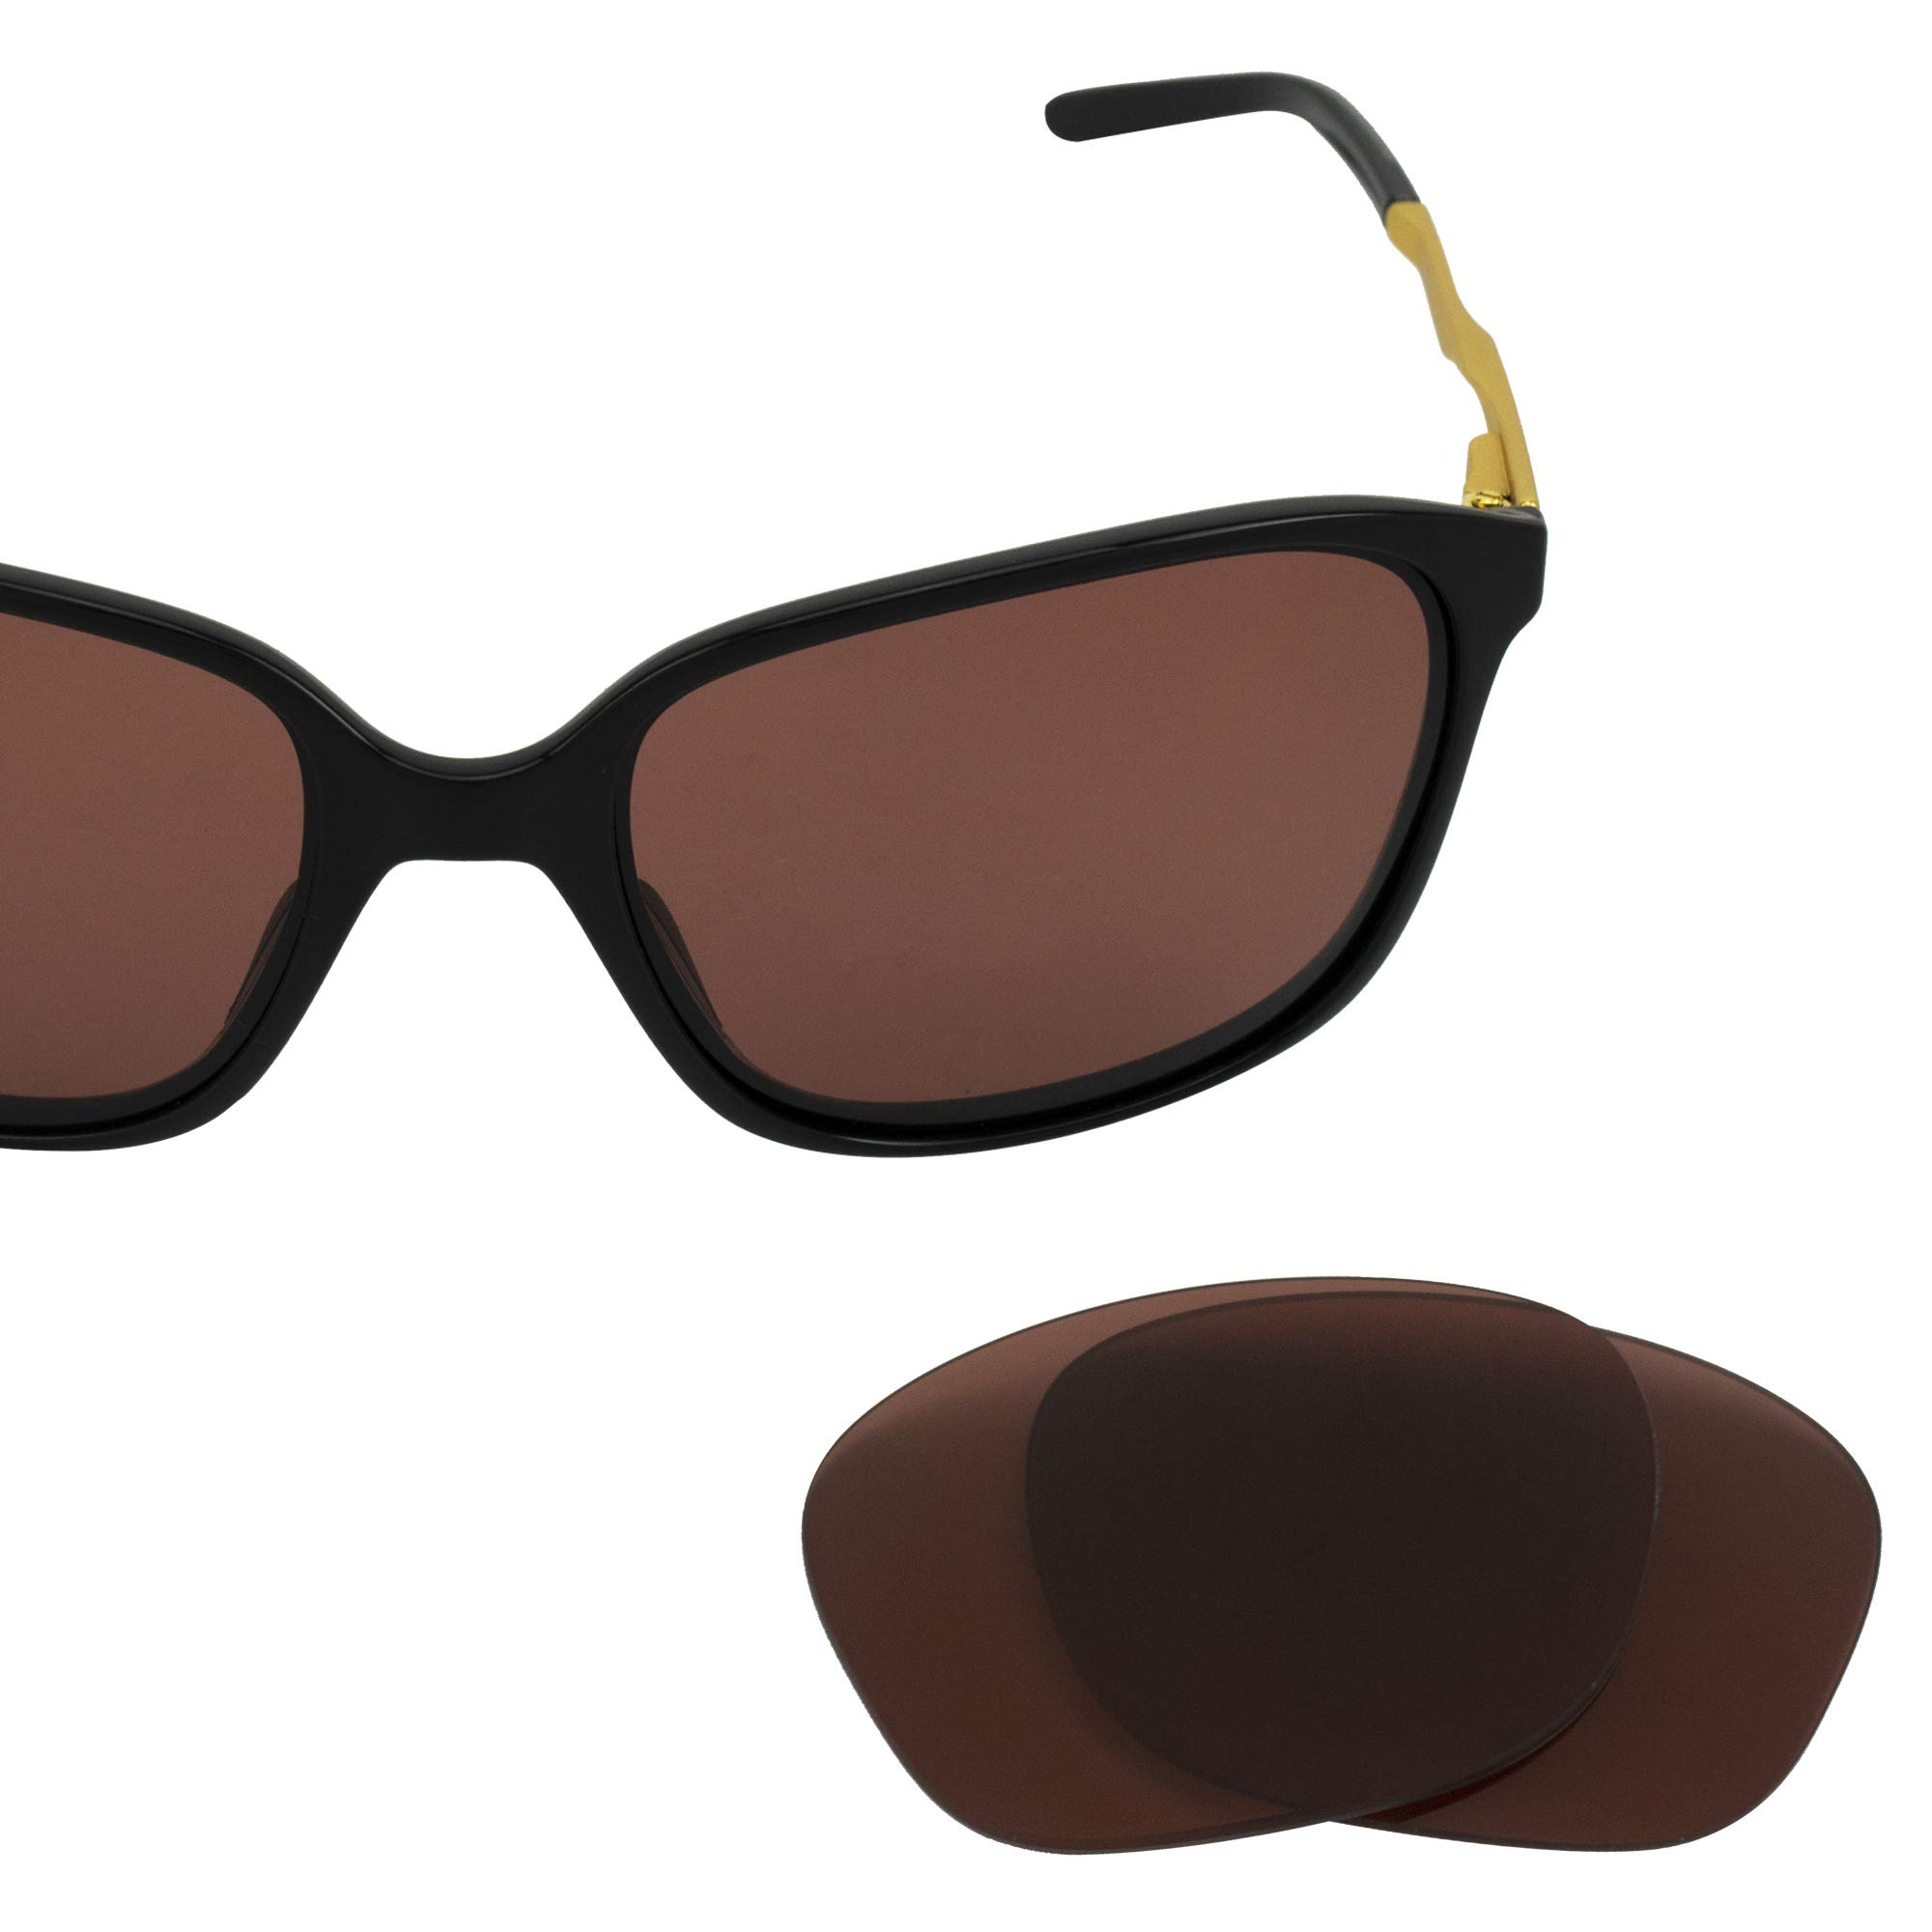 LenzFlip Replacement Sunglass Lenses for Oakley Womens GAME CHANGER - Multiple Color Options (Rose Polarized)